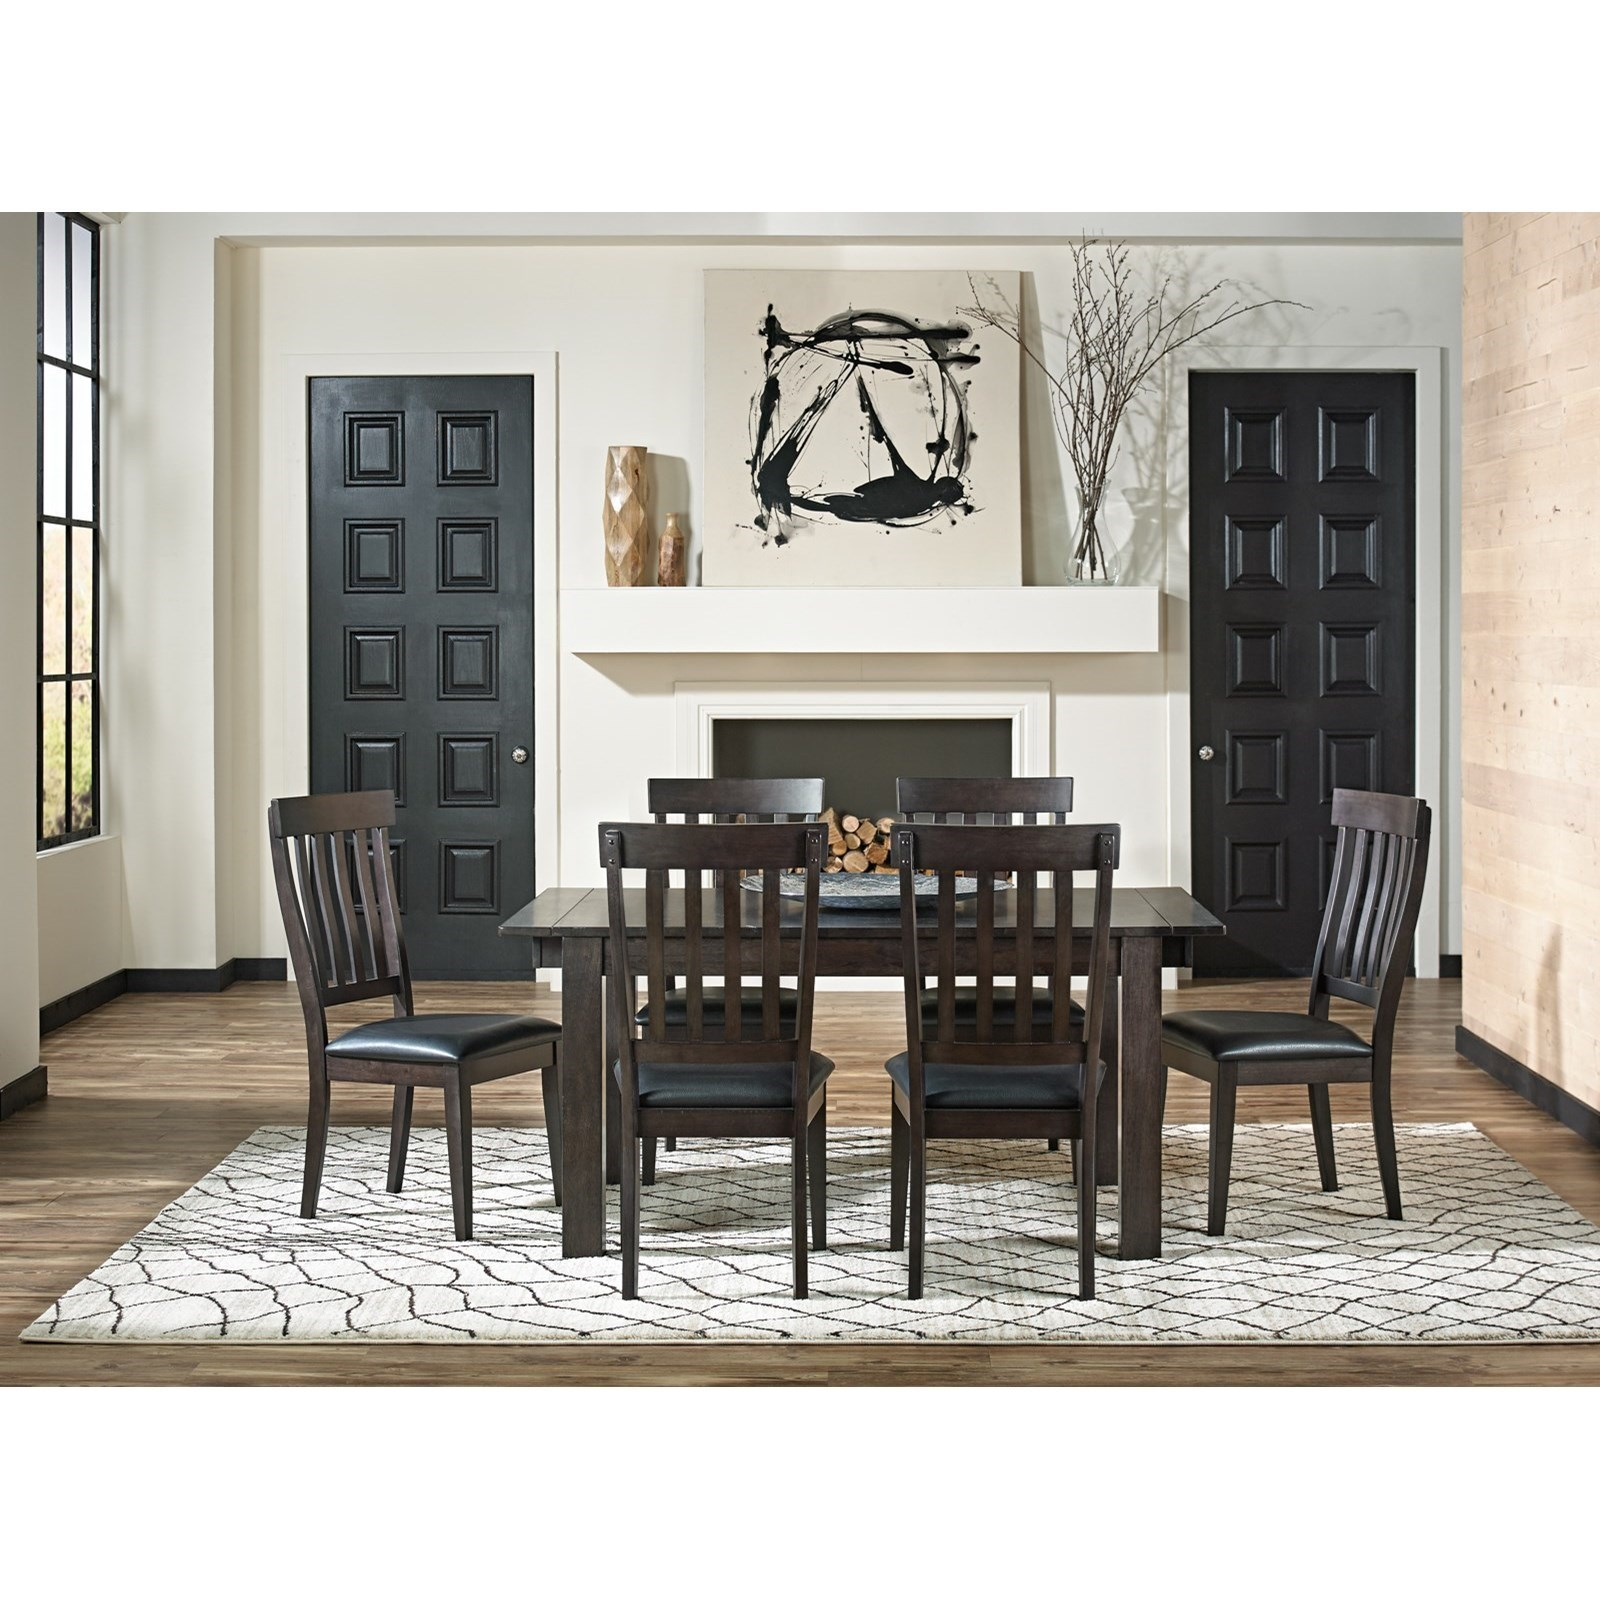 AAmerica Mariposa7 Piece Table And Chairs Set ...